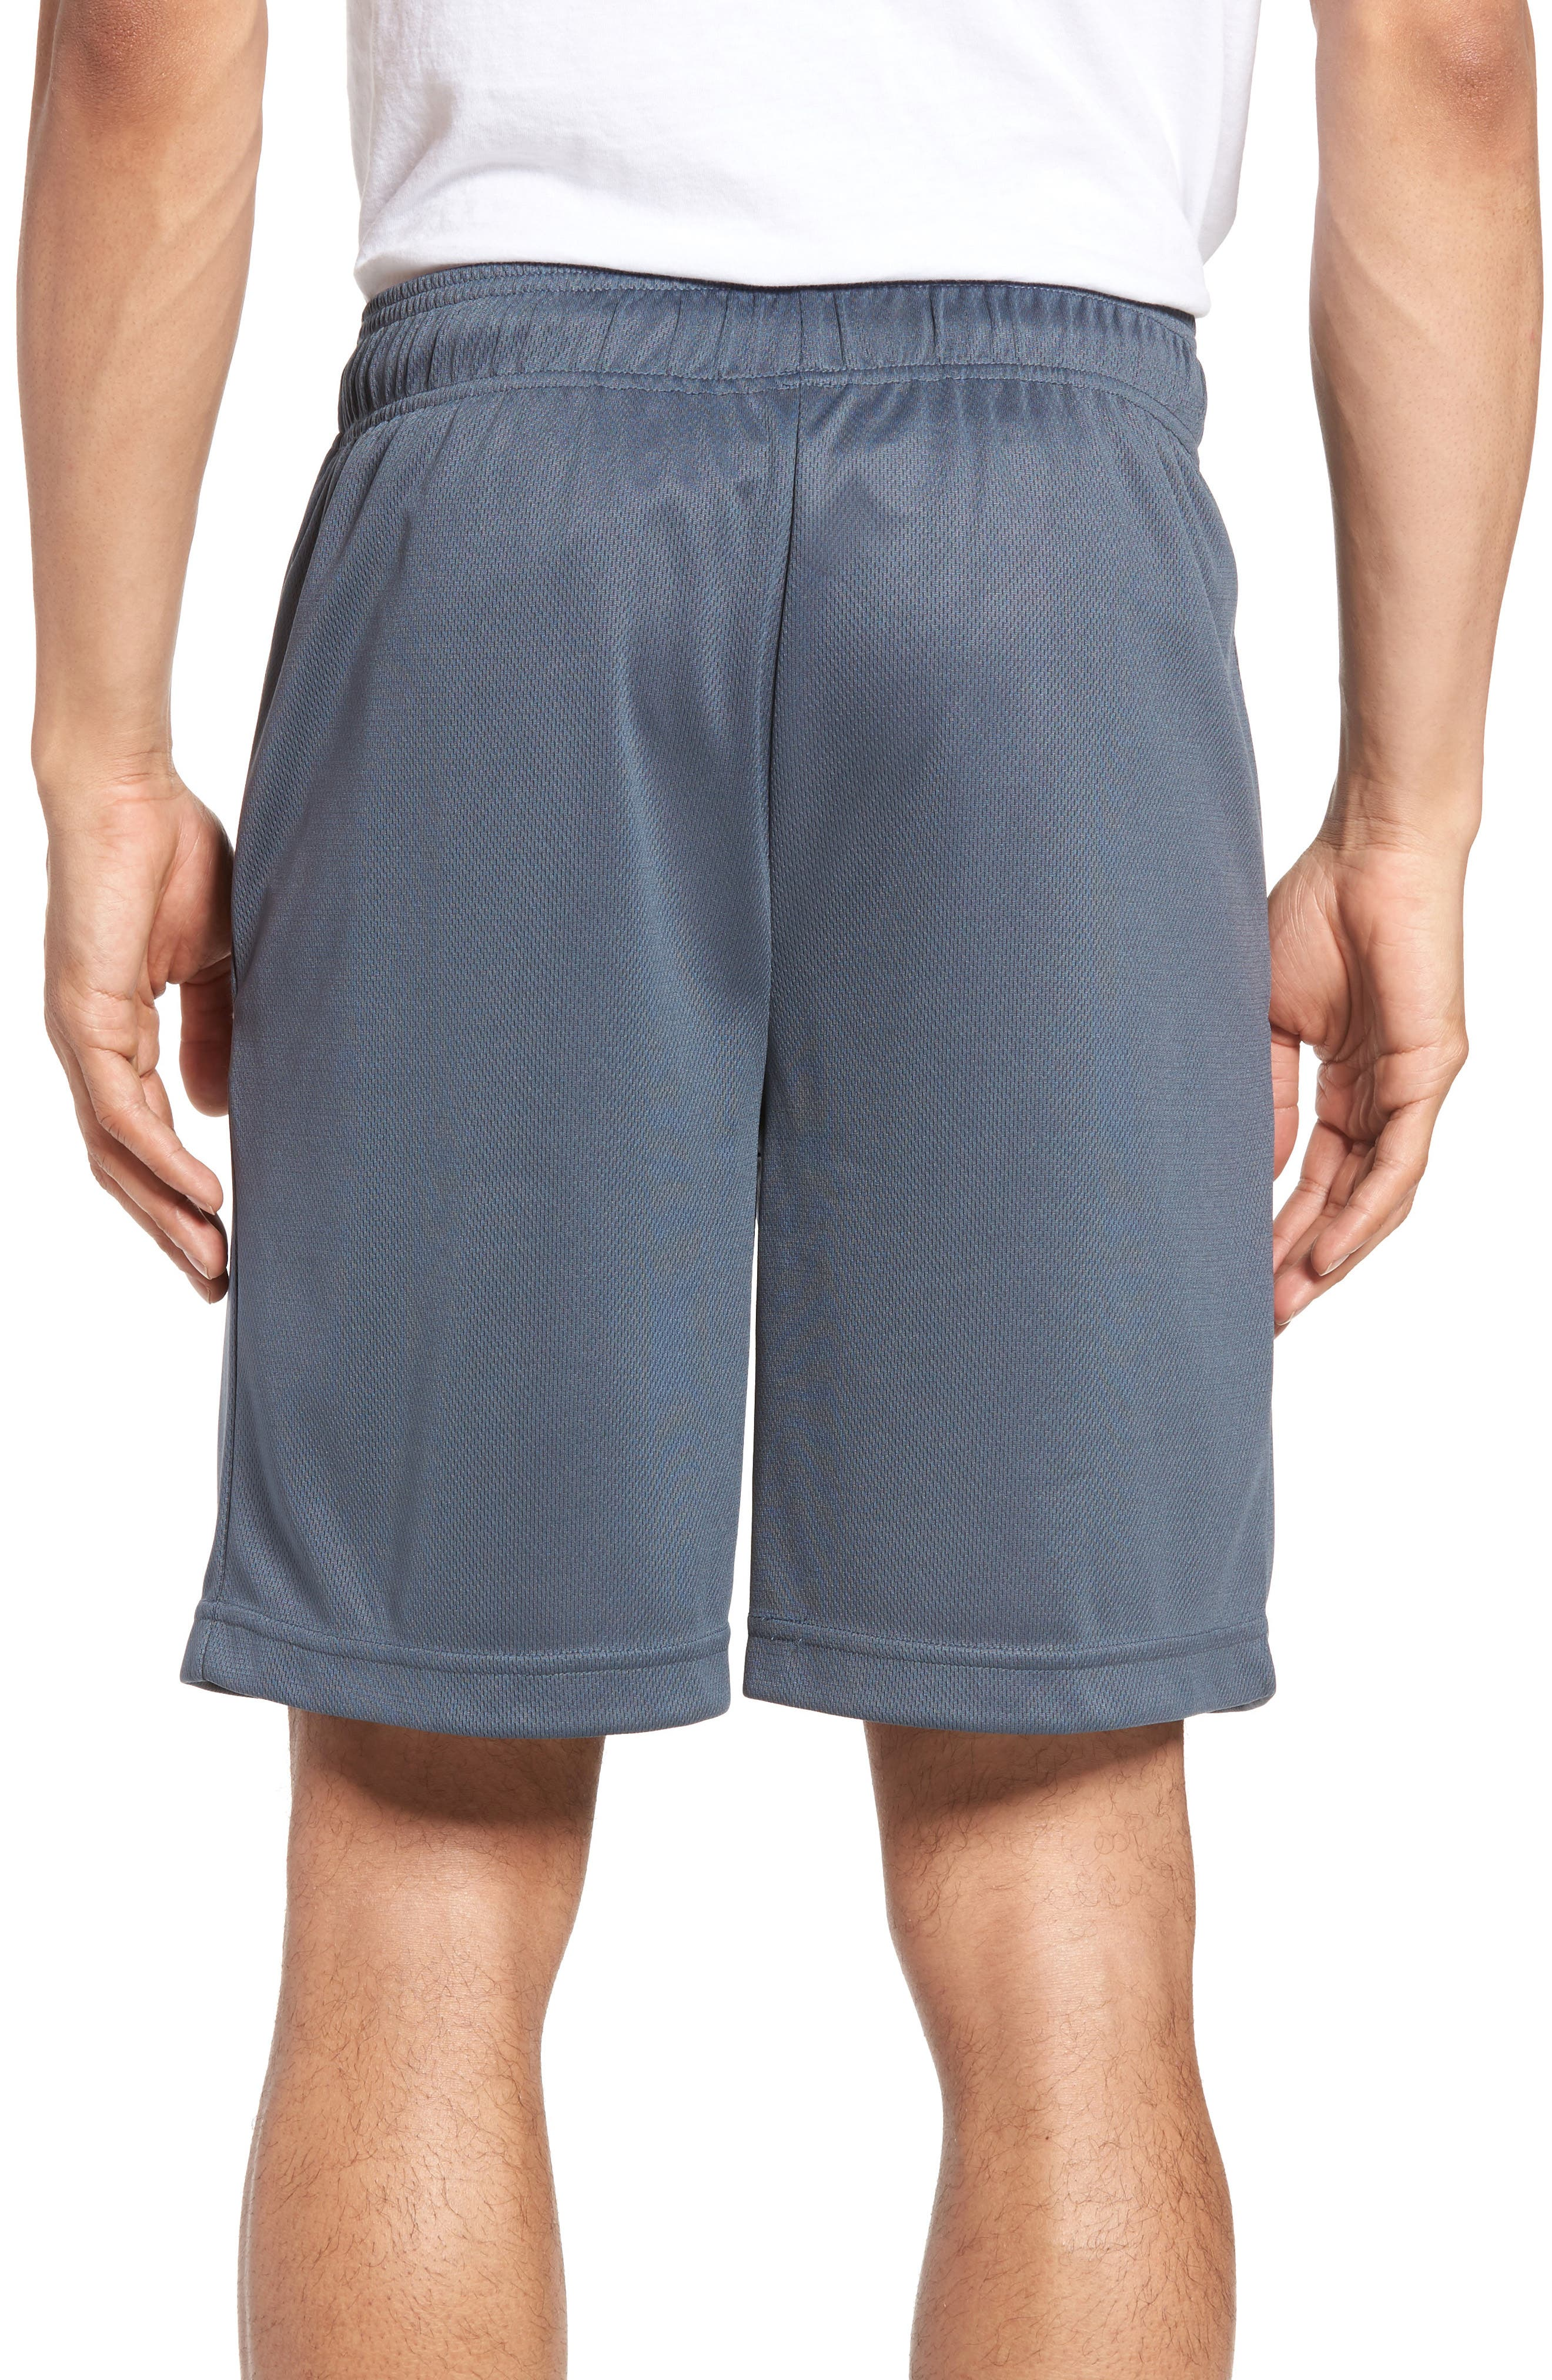 Work Out Lounge Shorts,                             Alternate thumbnail 5, color,